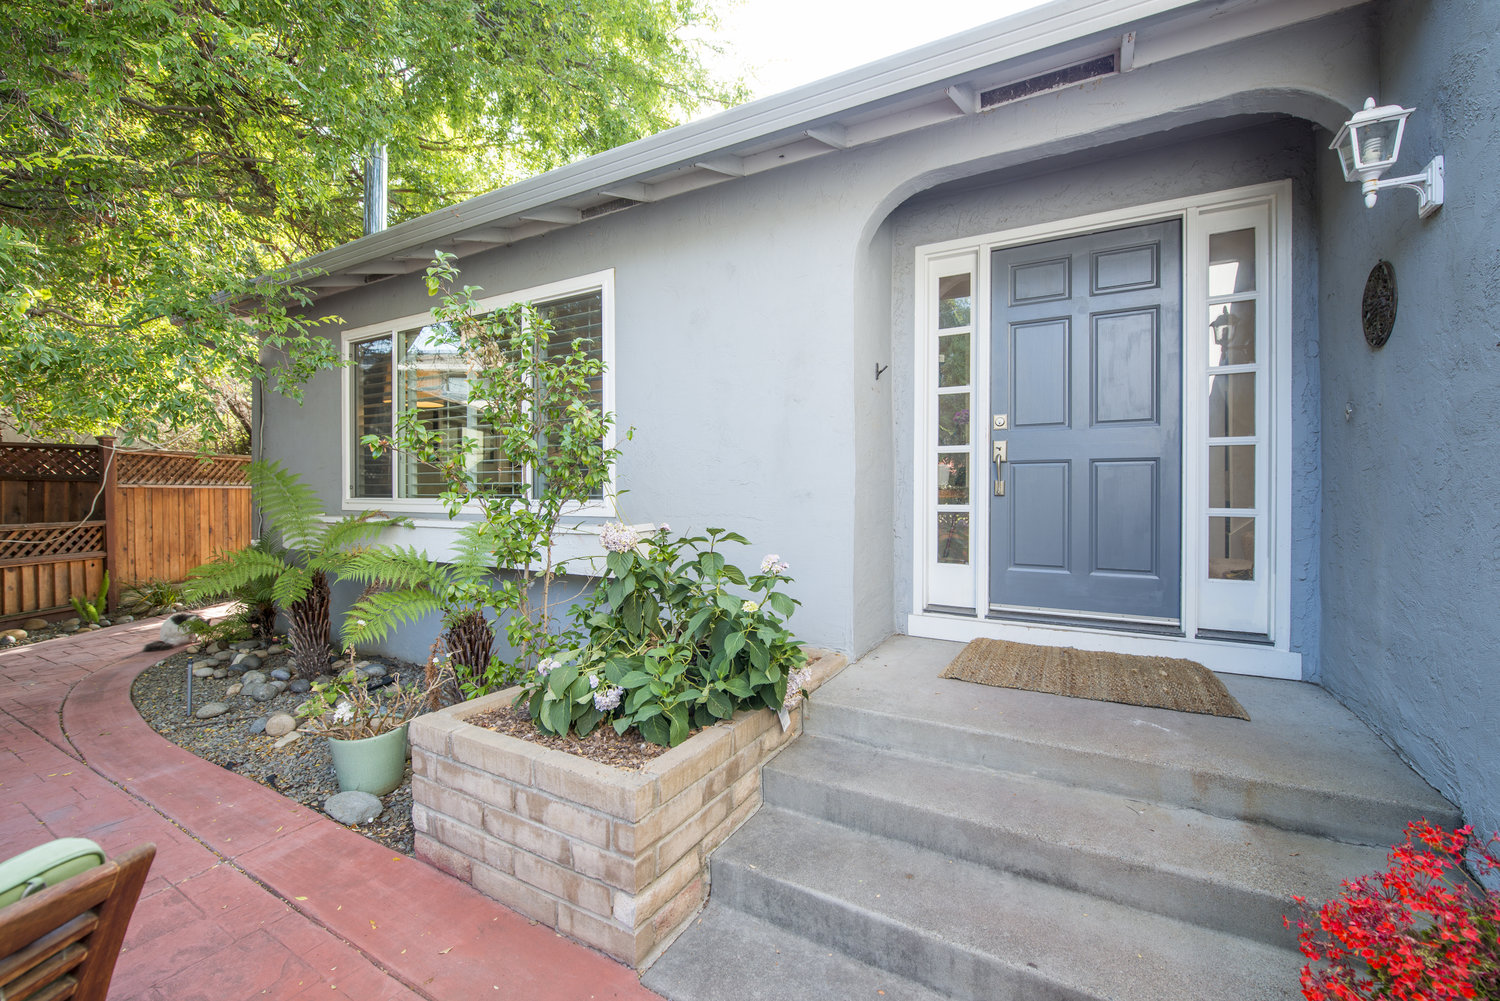 SUNNY AND BRIGHT   In the Mission neighborhood of Fremont, this sunny, open home is perfect for entertaining inside and out - front, back and side yards - all year round! Great floor plan with a fireplace in the family room and a wood stove in the living room, skylights in the bright kitchen and large master bedroom and, no rear neighbors!